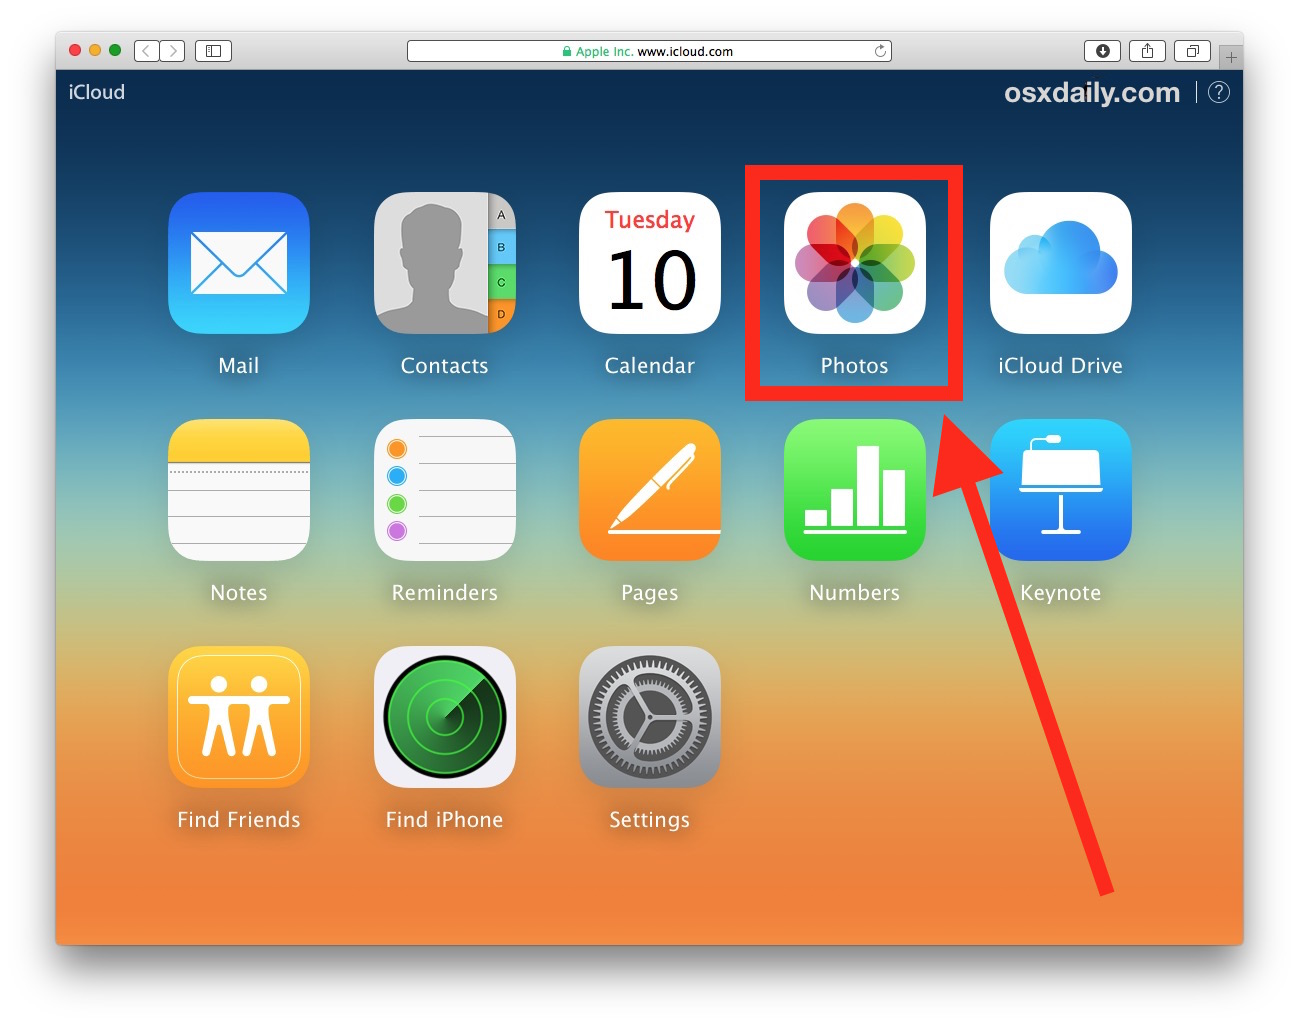 How to Transfer Photos from iCloud to External Hard Drive - iMobie